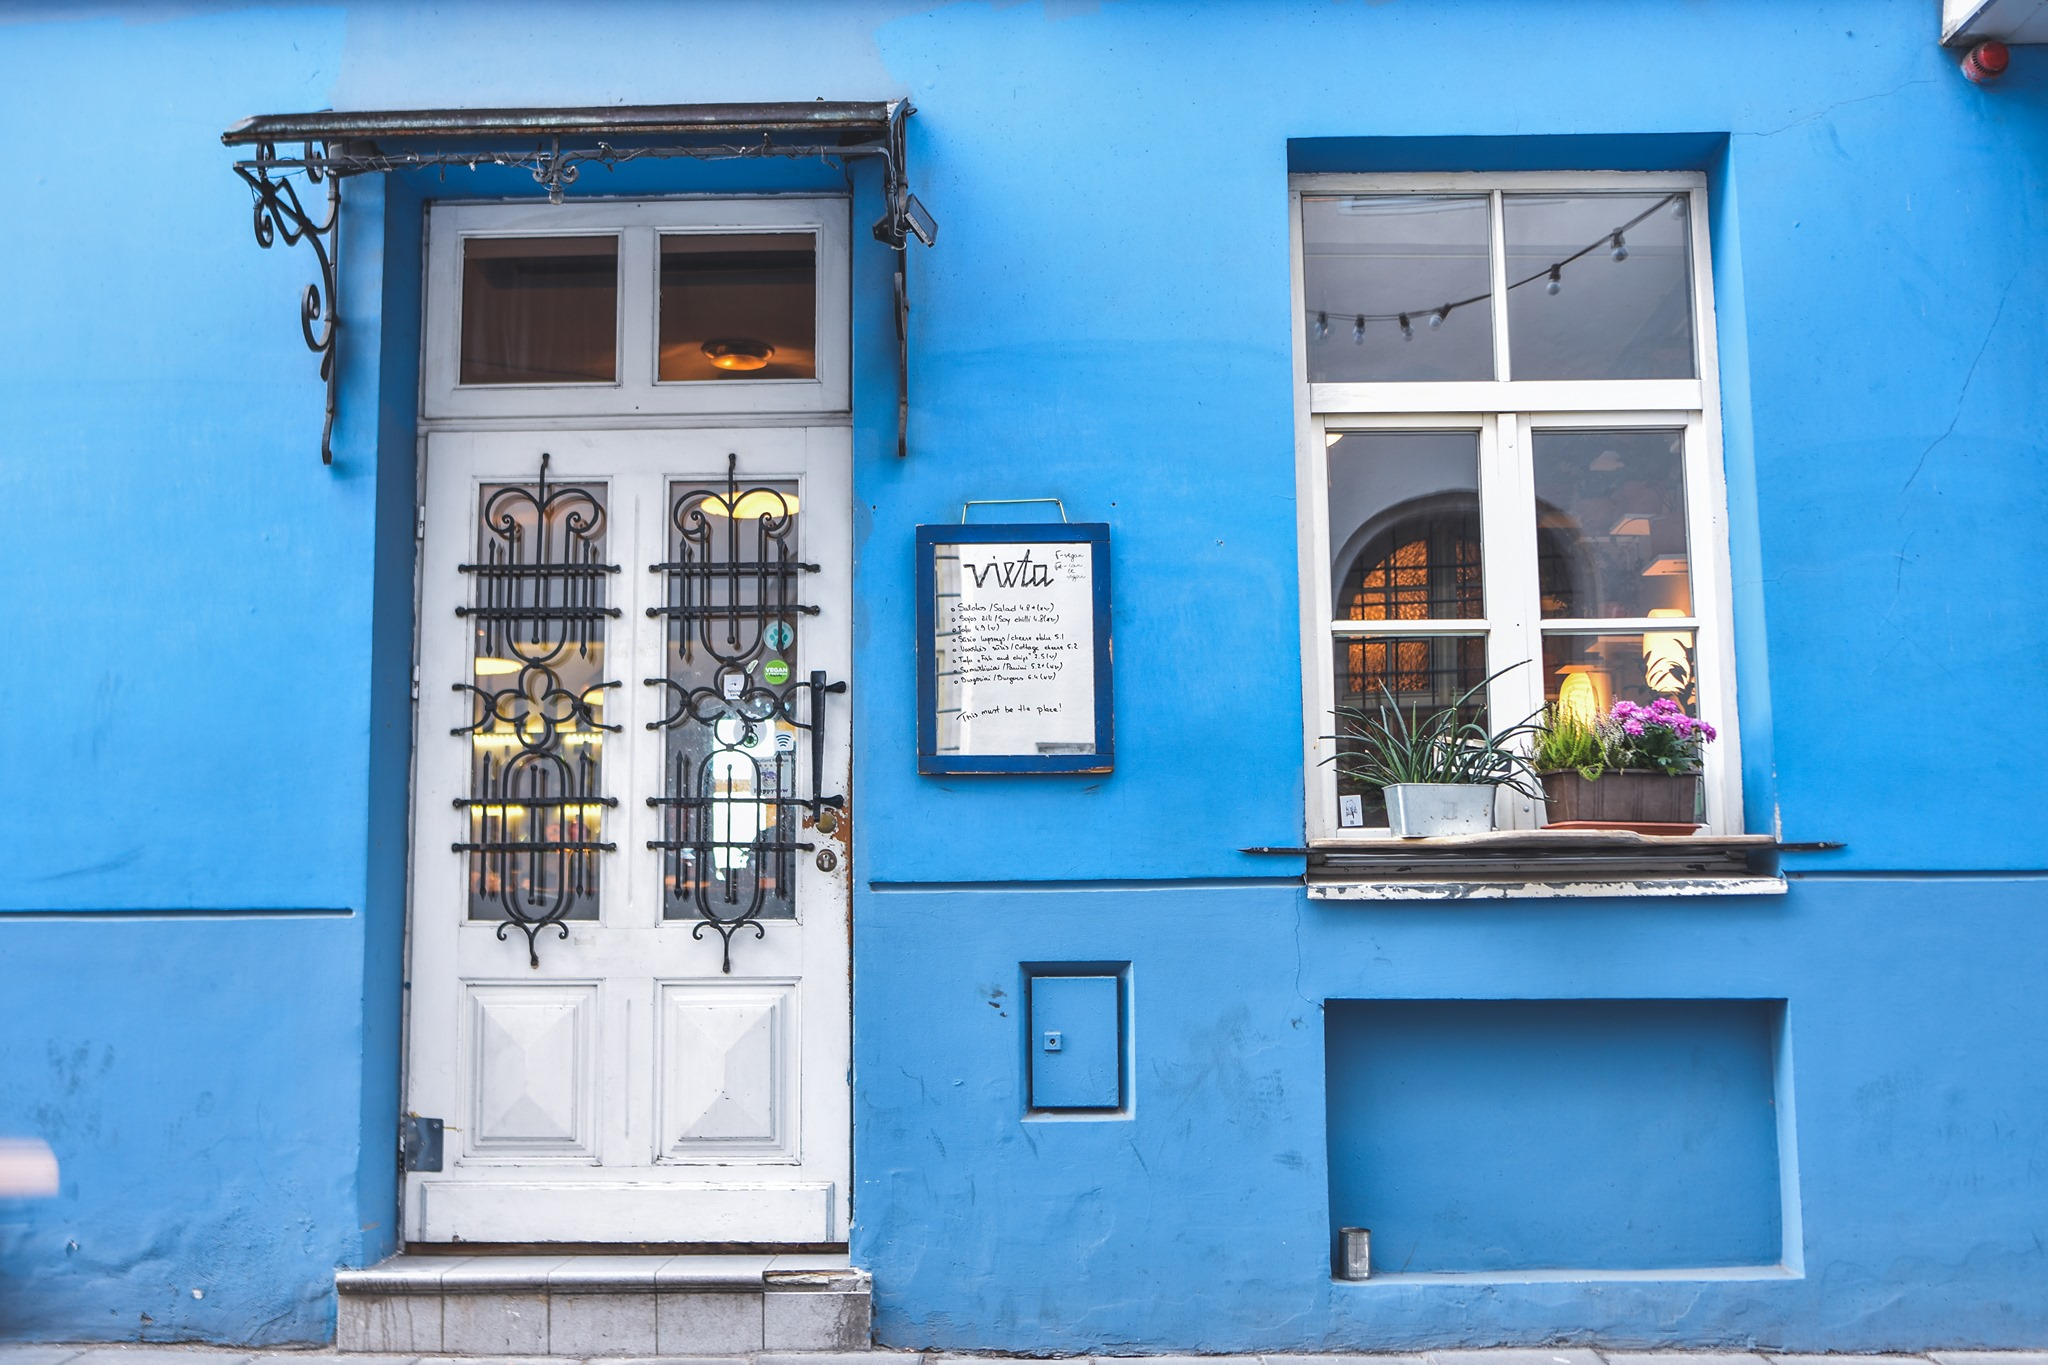 Vieta is a perfect tiny vegetarian restaurant in Vilnius Old Town